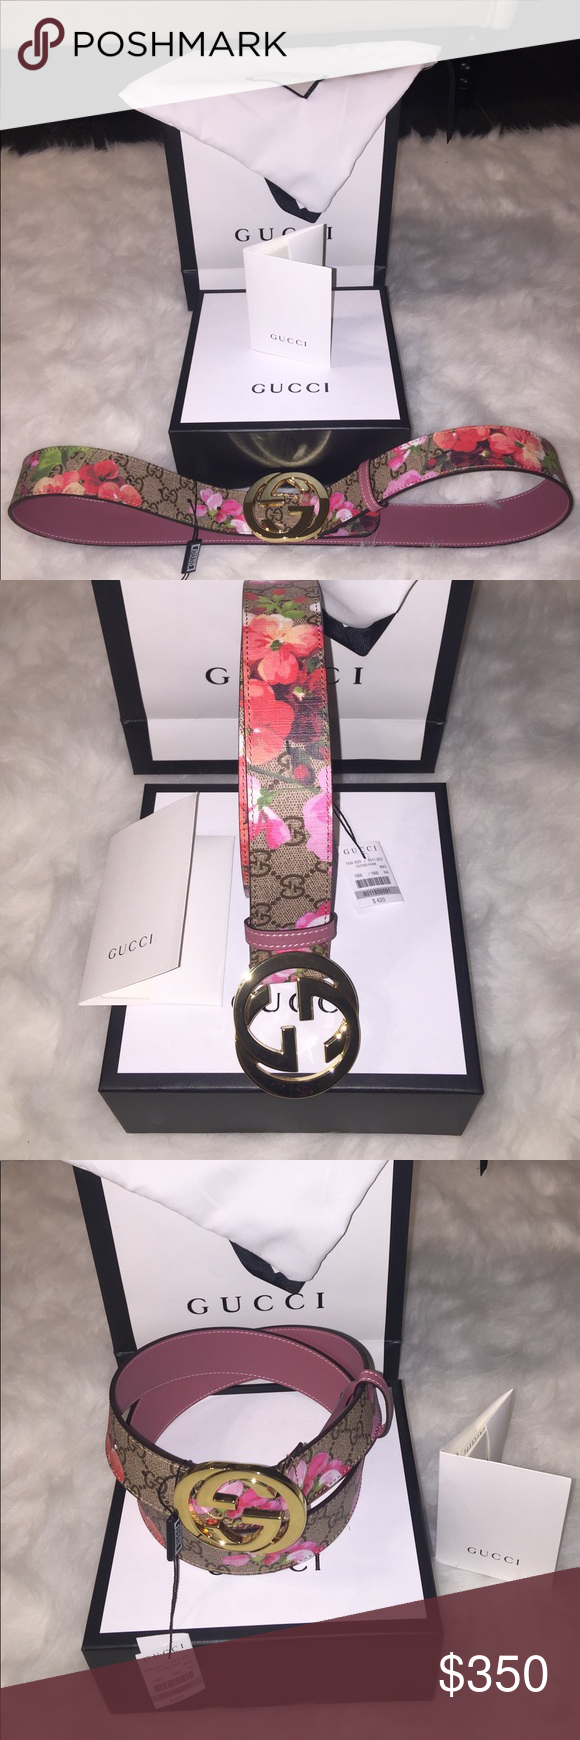 0f90ceddb89 Women s Gucci Bloom Belt Women s Gucci Bloom Belt Authentic Brand new Comes  with everything in the pictures gucci Accessories Belts